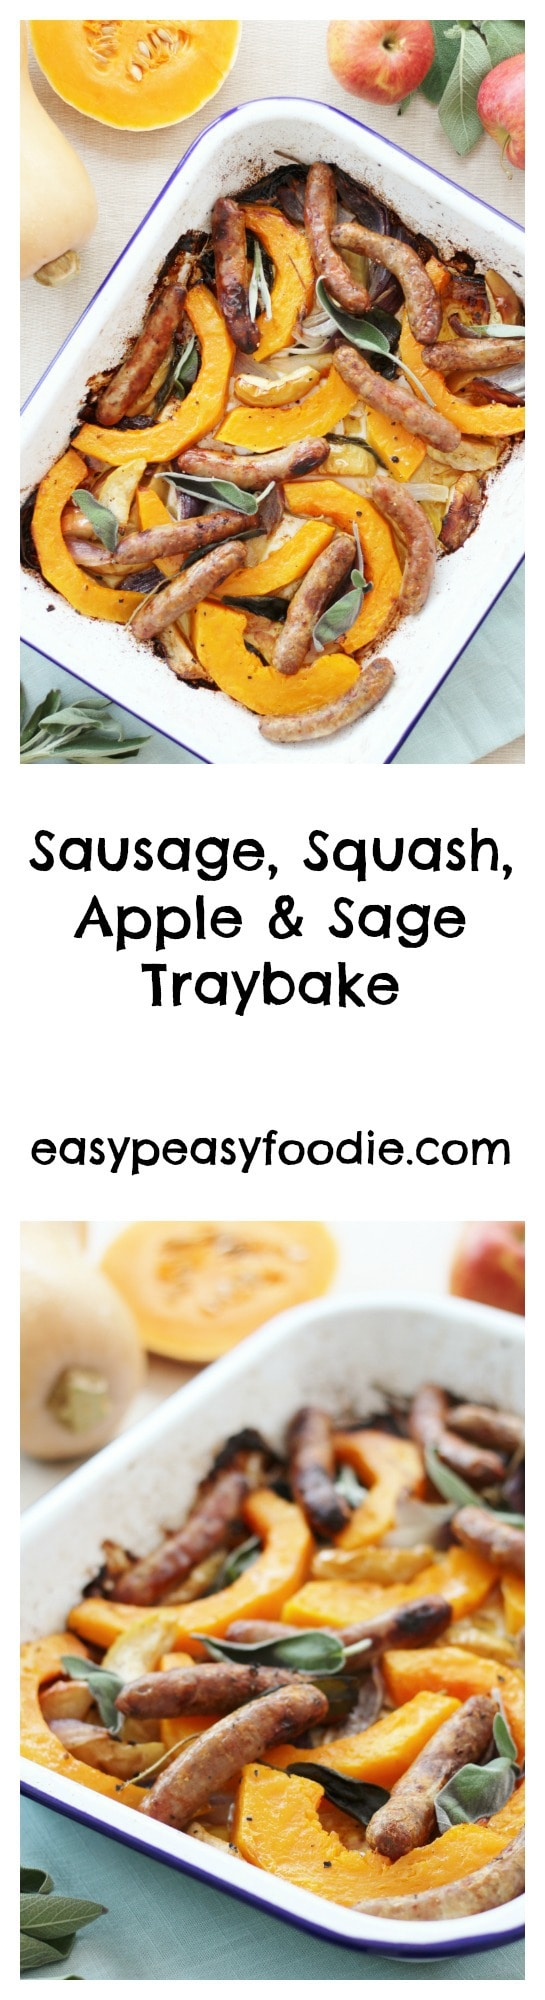 Autumn in a traybake! This simple Sausage, Squash, Apple and Sage Traybake is full of the flavours of the season, yet only takes a few minutes to throw together and into the oven. Perfect for busy midweek evenings! #traybake #sausagetraybake #autumntraybake #butternutsquash #sage #apples #easymidweekmeals #easyentertaining #easymeals #midweekmeals #easydinners #dinnertonight #dinnertonite #familydinners #familyfood #traybake #sheetpandinner #glutenfree #dairyfree #easypeasyfoodie #cookblogshare